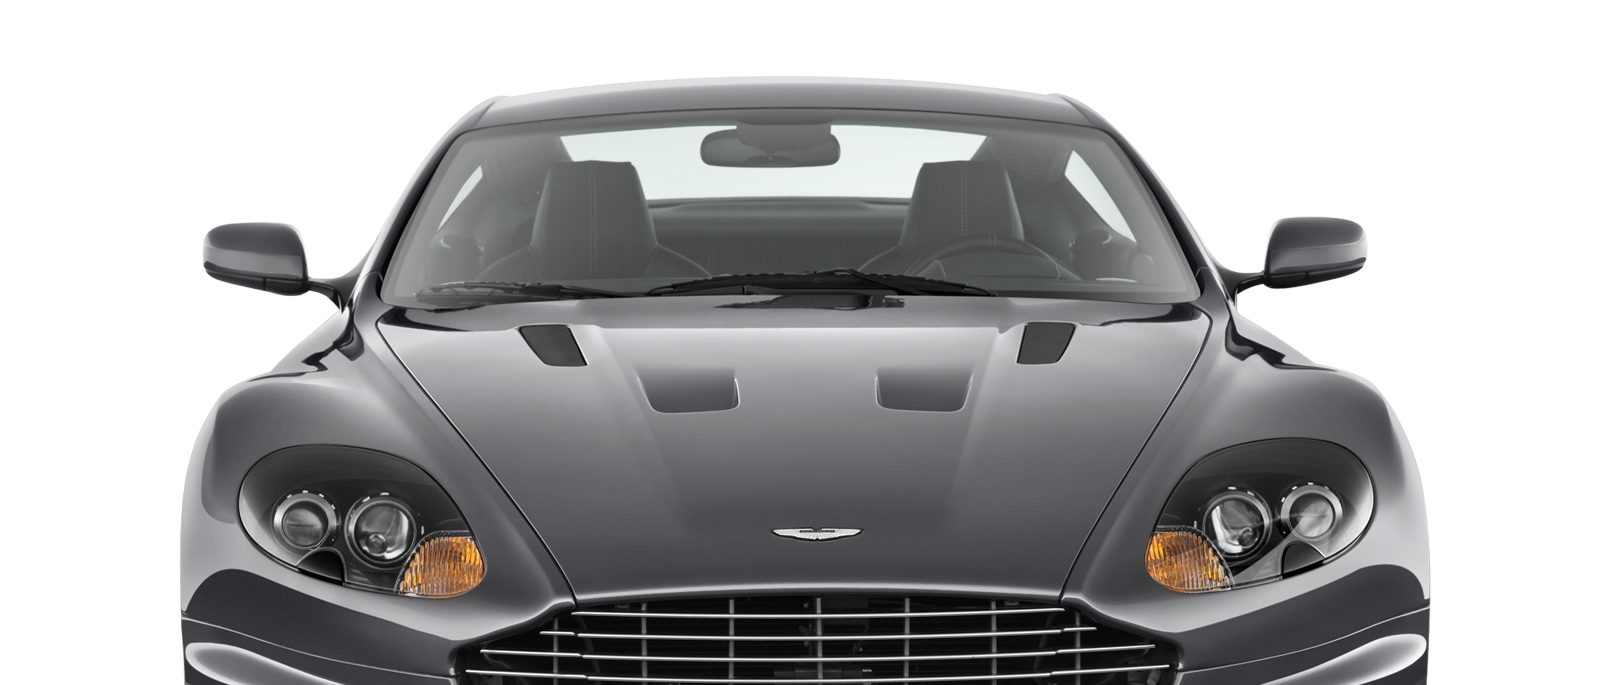 aston martin db9 car rental exotic car collection by. Black Bedroom Furniture Sets. Home Design Ideas